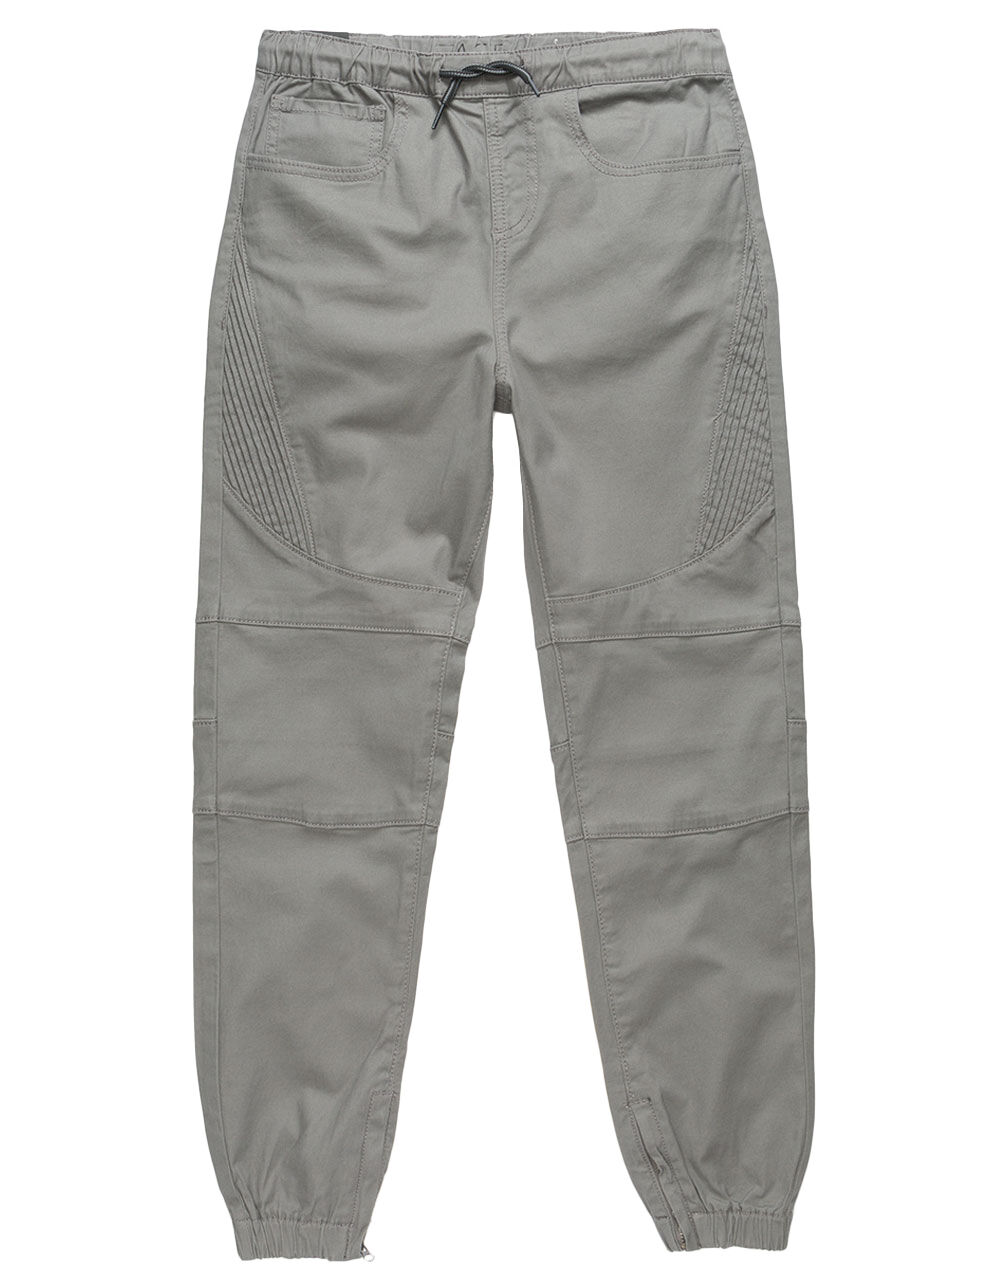 Image of EAST POINTE ARNOLD BOYS TWILL MOTO JOGGER PANTS